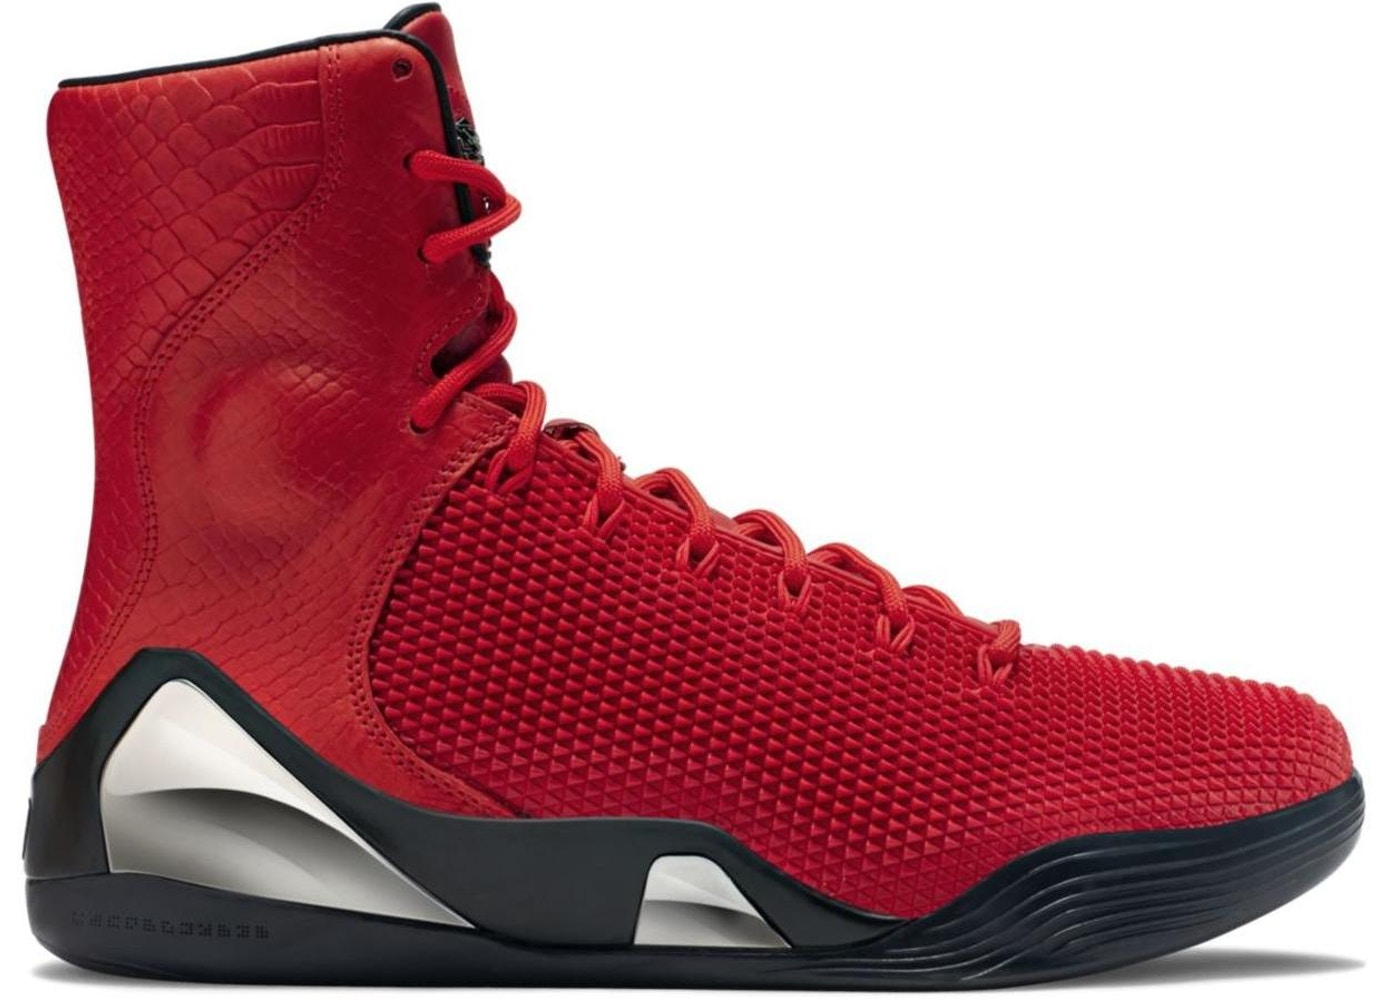 buy online af393 b0f4d Kobe 9 KRM EXT High Red Mamba - 716993-600